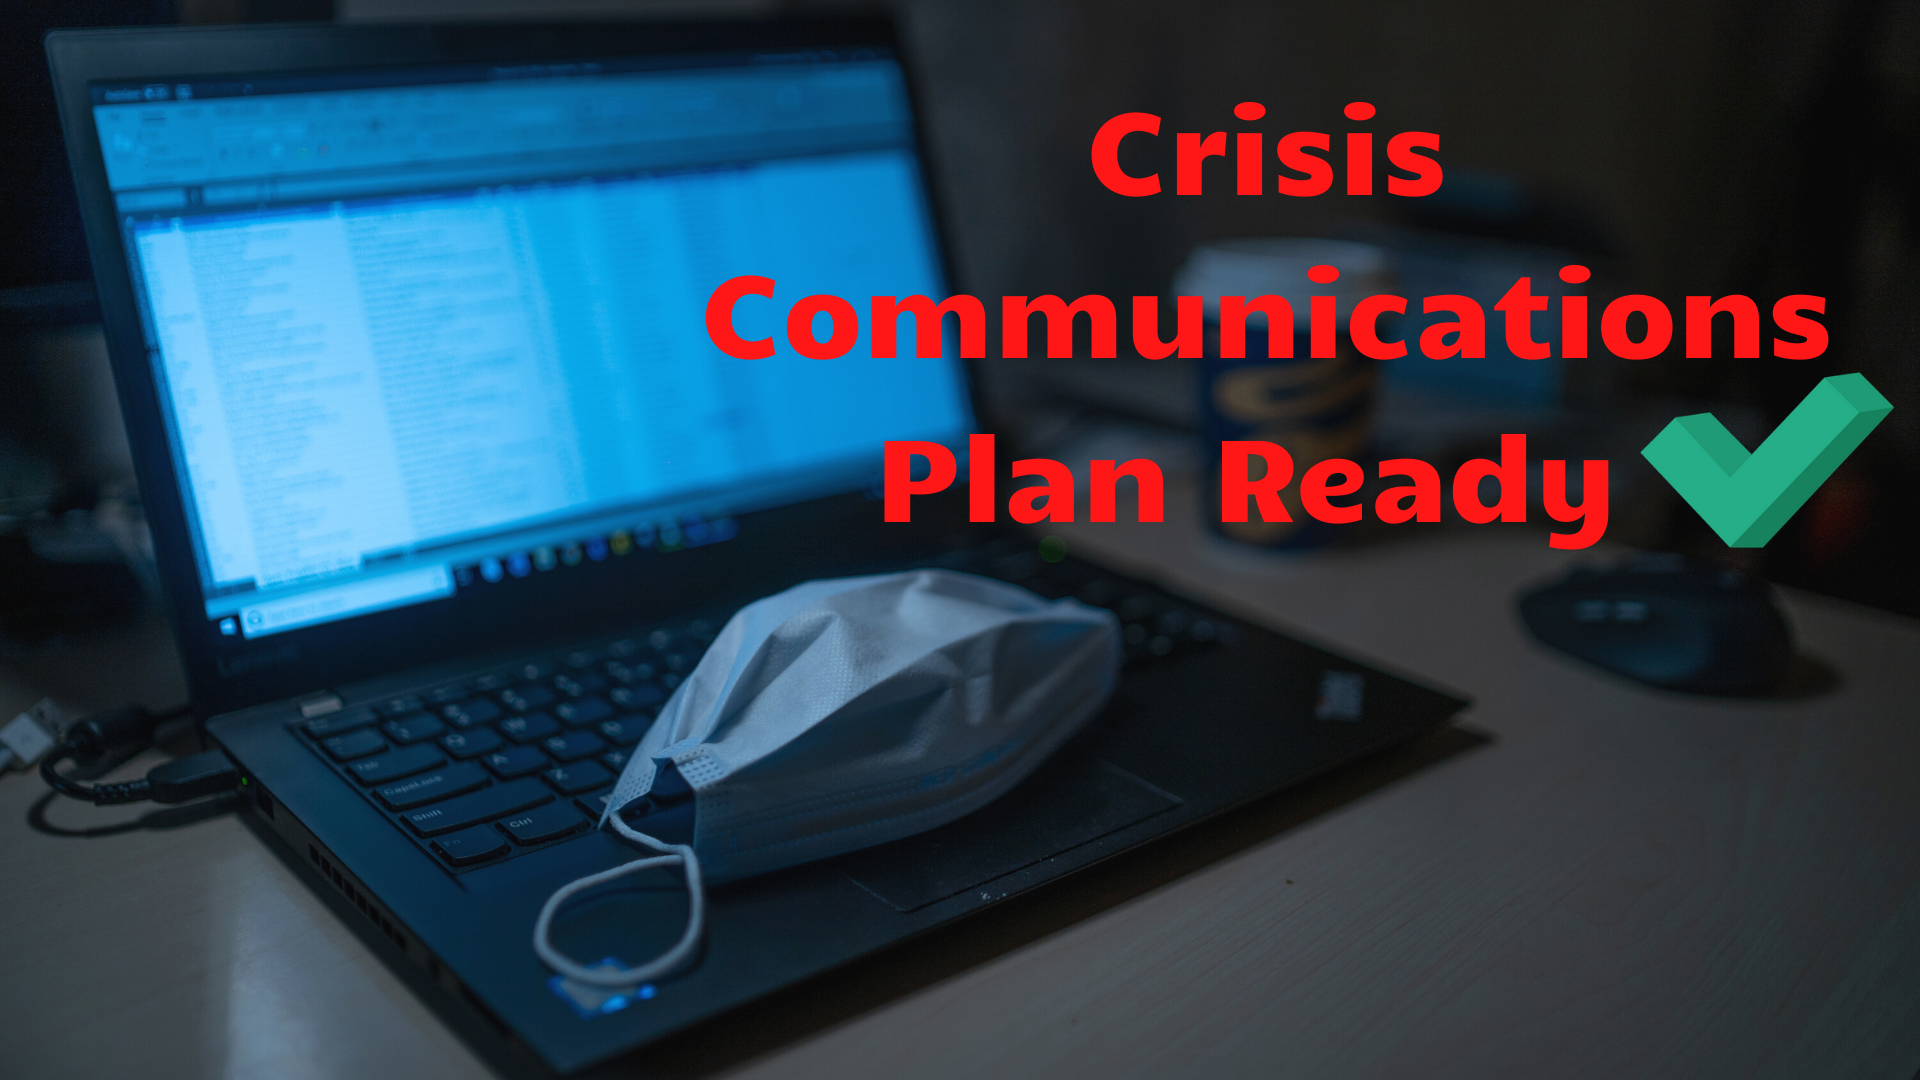 Crisis Communications Plan Ready